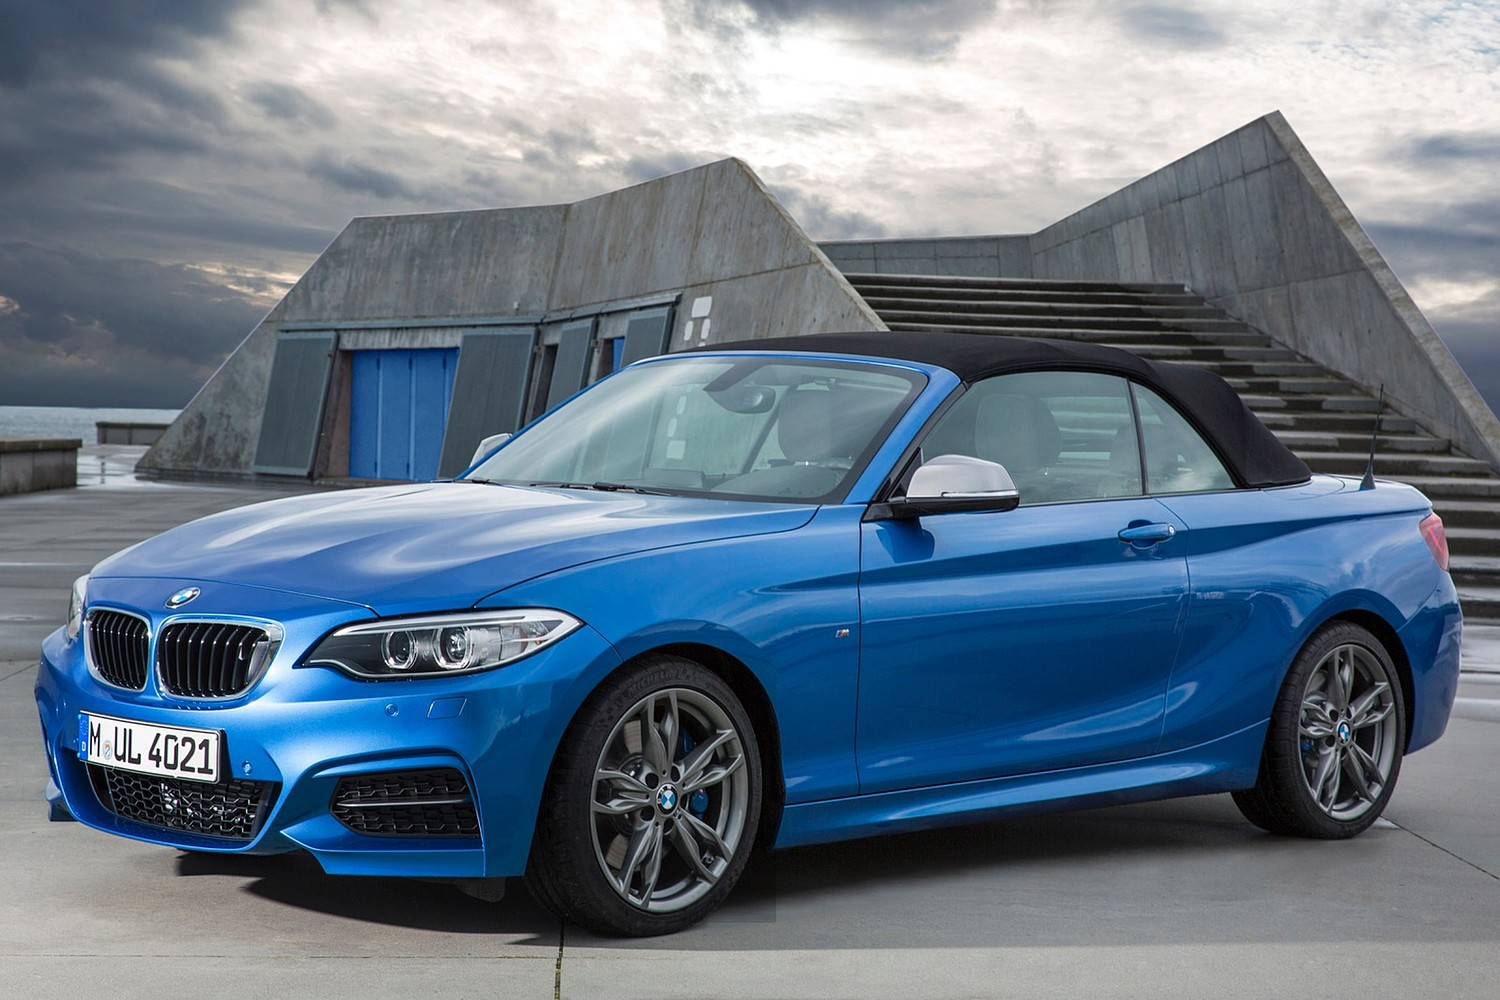 BMW 2 Series M235i Convertible Exterior (2015 model year shown)